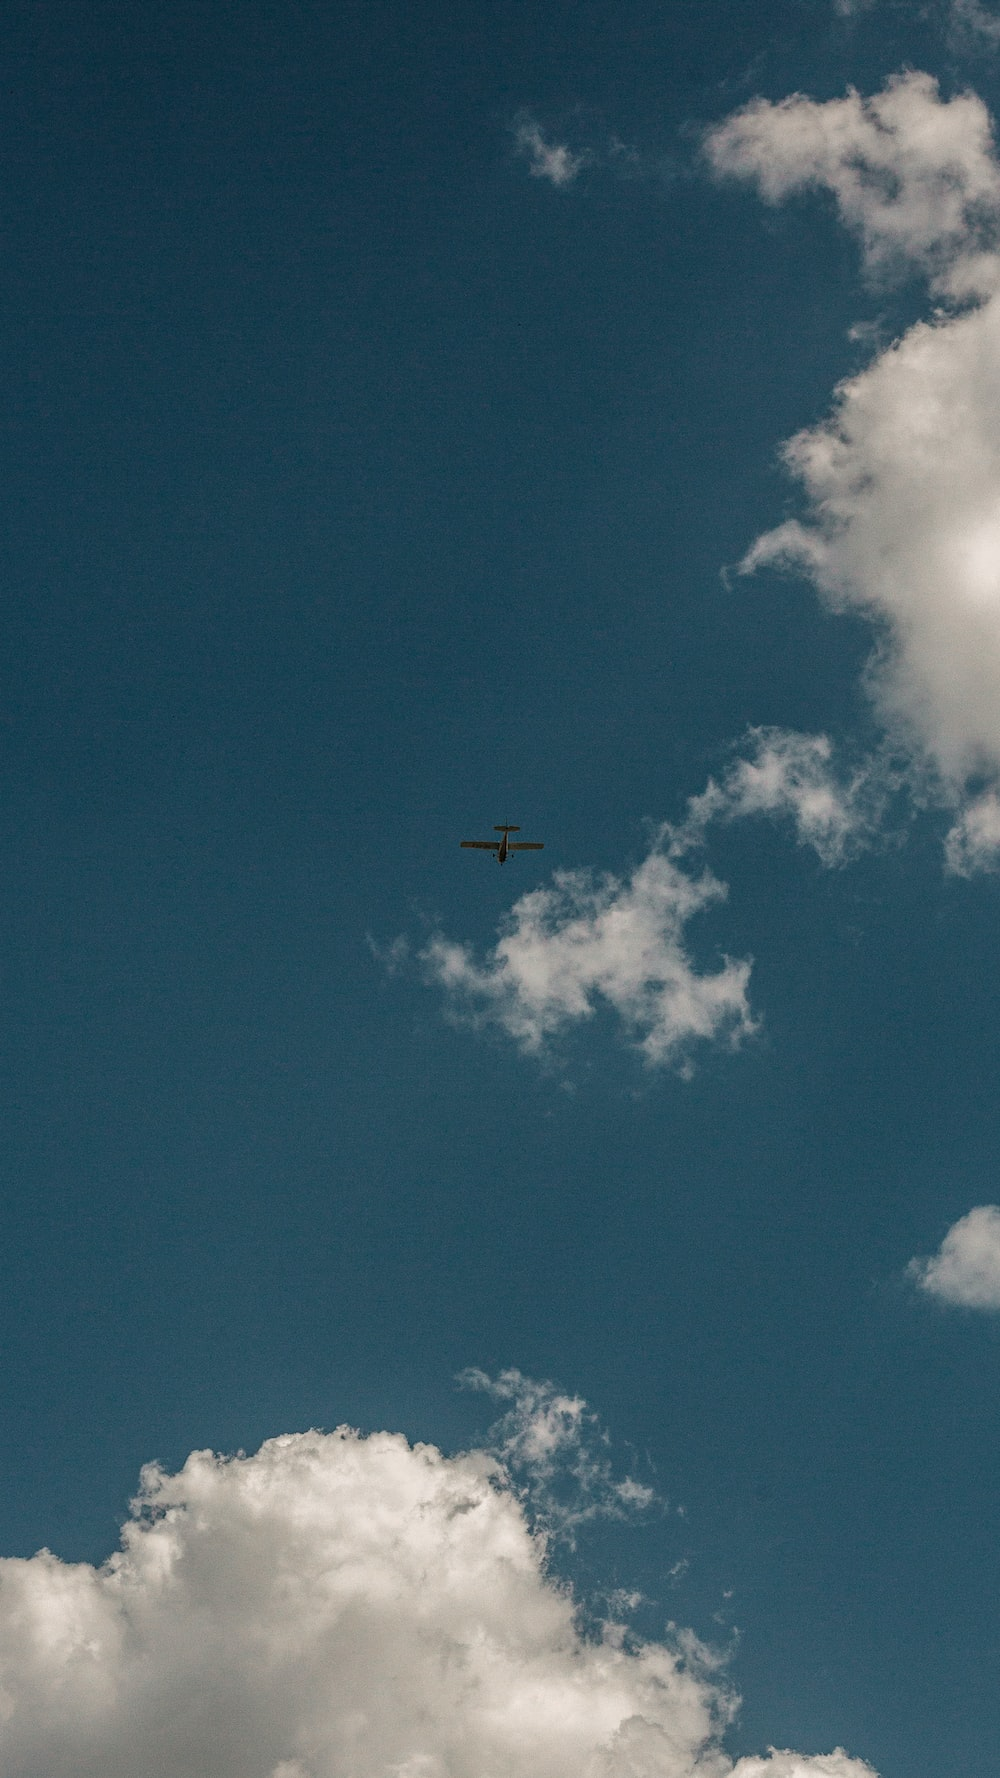 airplane in the sky during daytime